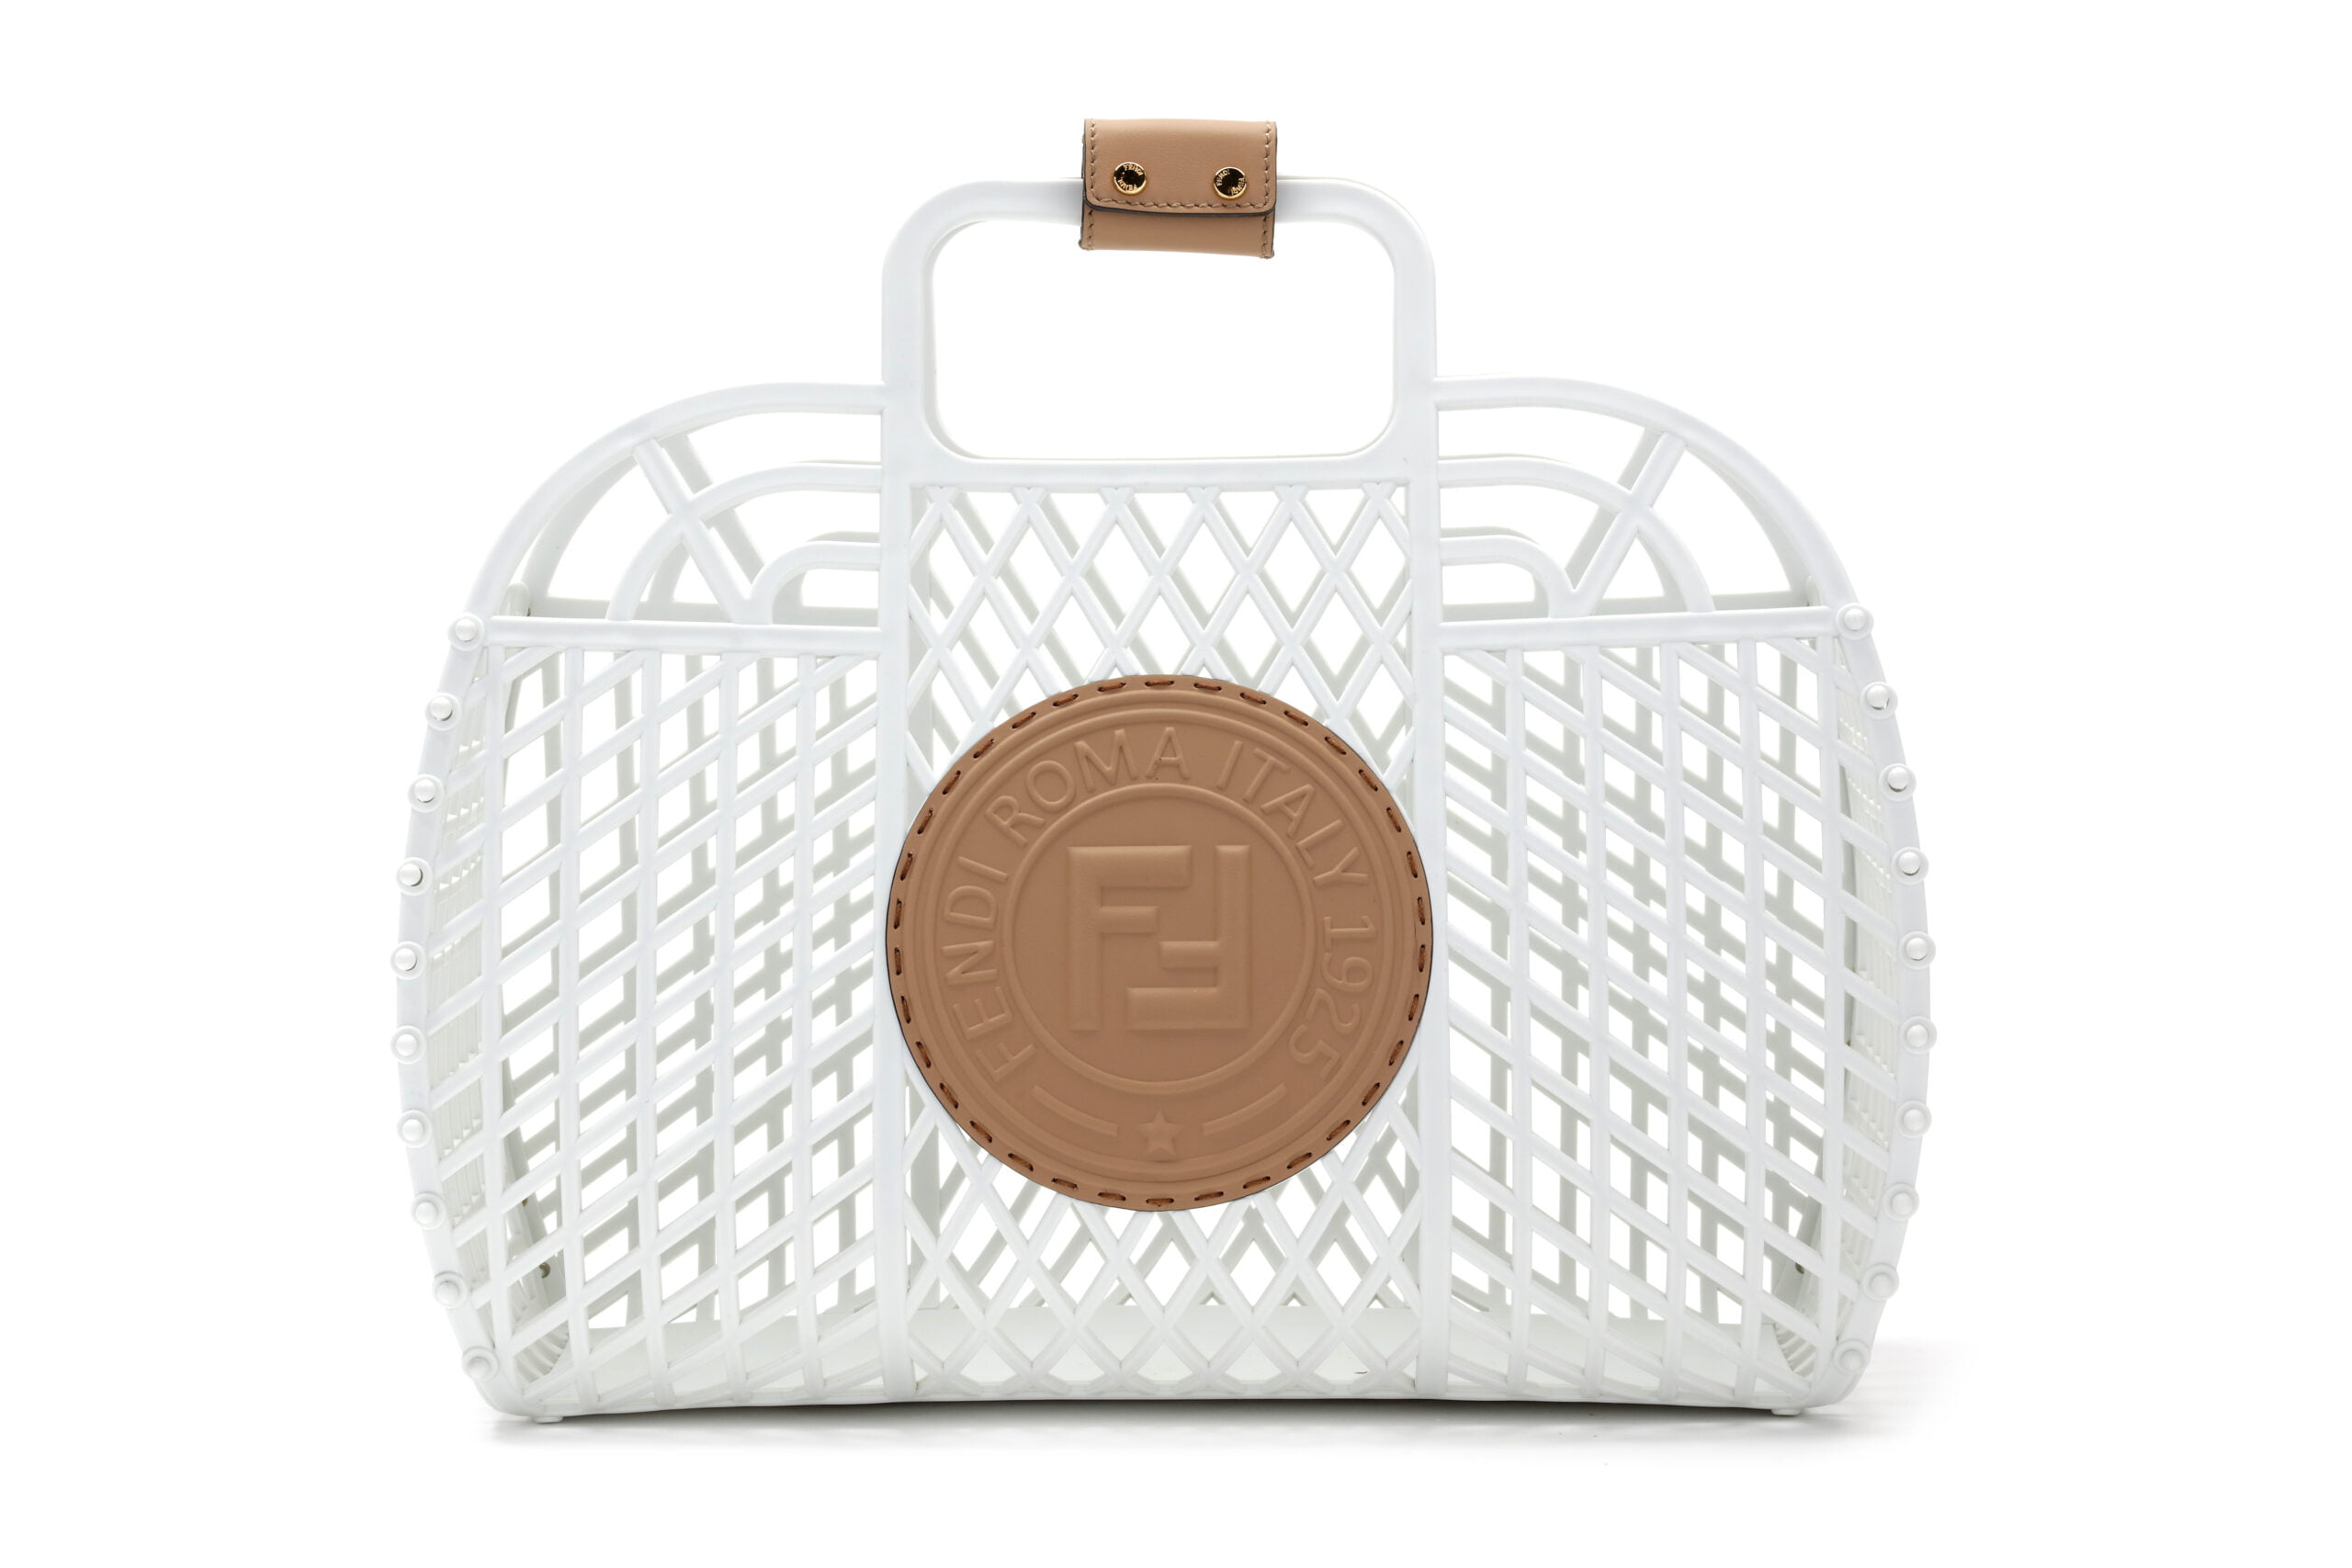 Fendi Presents The Basket Bag